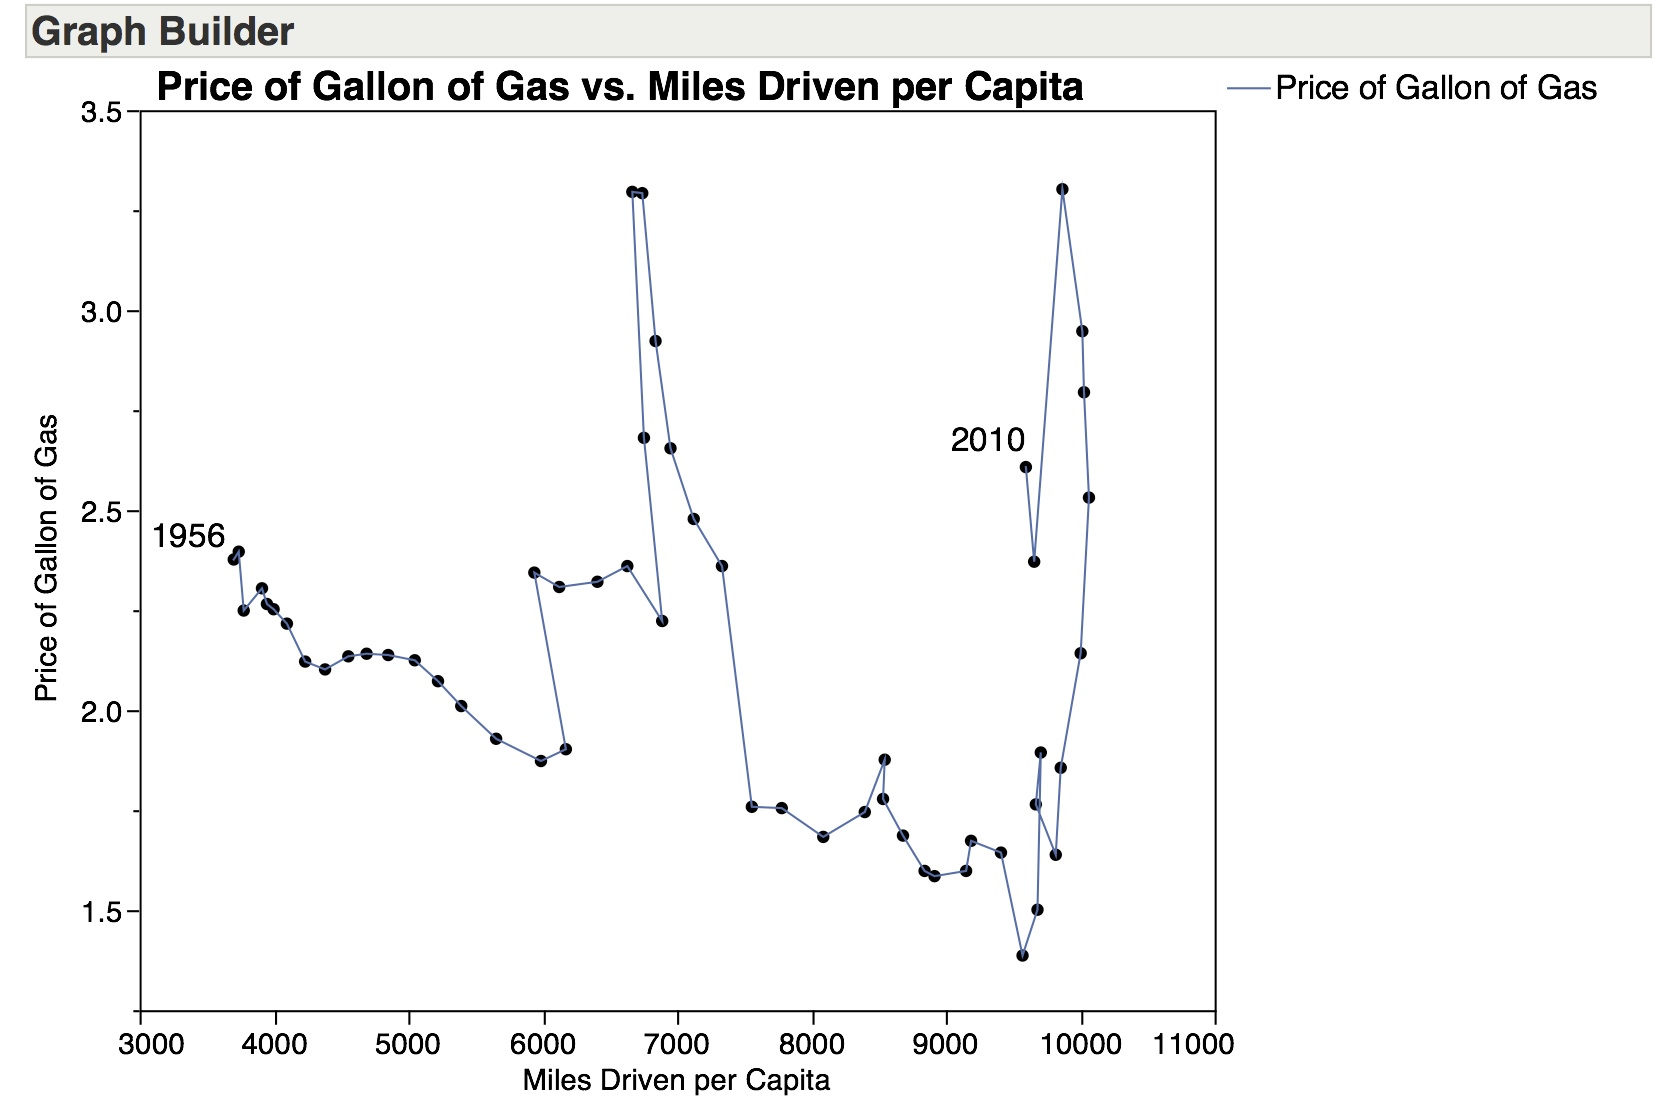 Price-of-Gas-on-Y-wLine.jpg